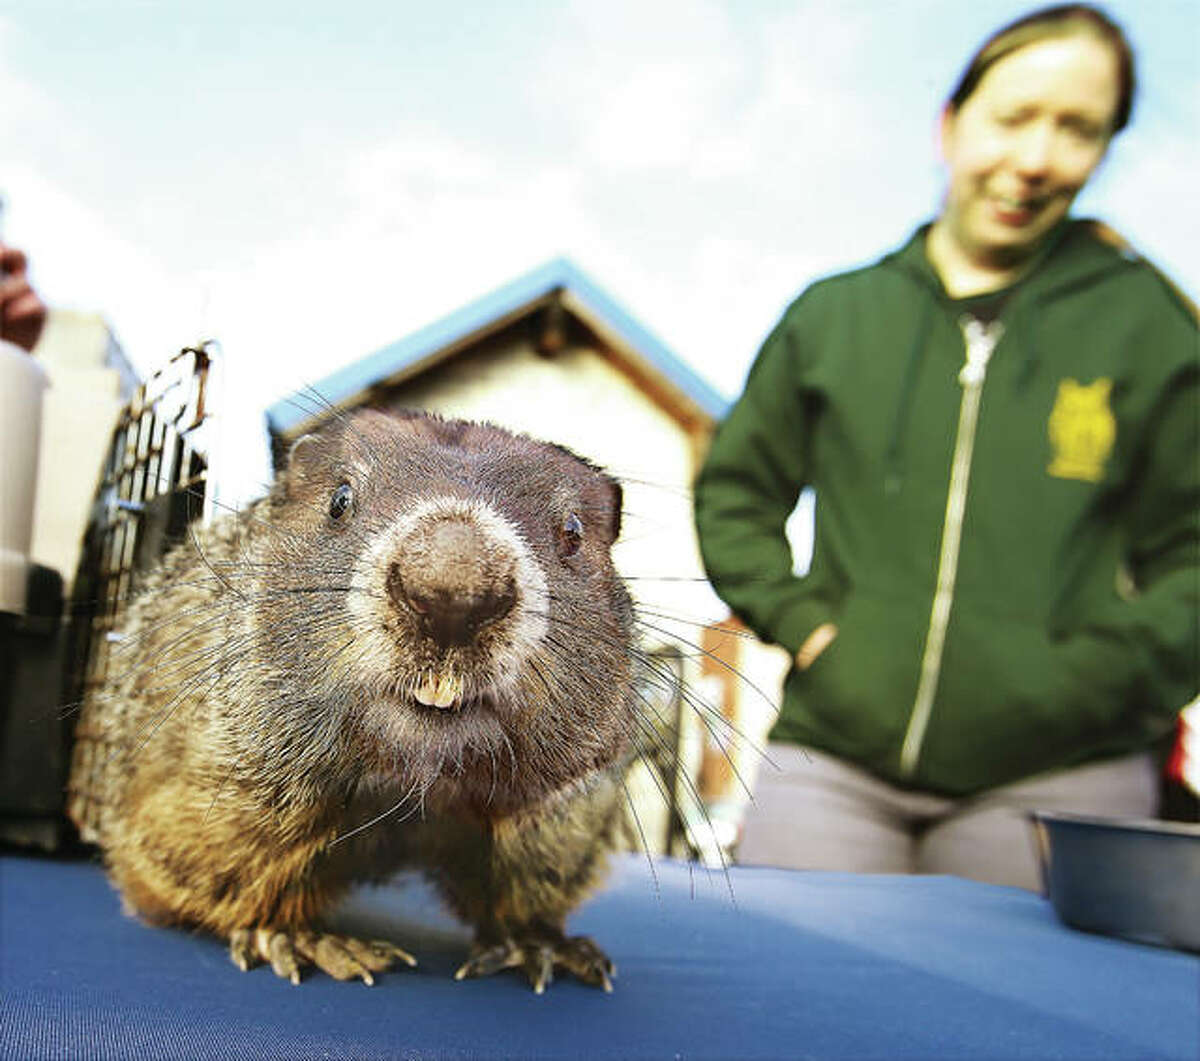 Murray, a groundhog from the TreeHouse Wildlife Center, gets a closer look at the photographer's camera after seeing his shadow in a ceremony held at the Alton Visitor Center in downtown Alton last February.